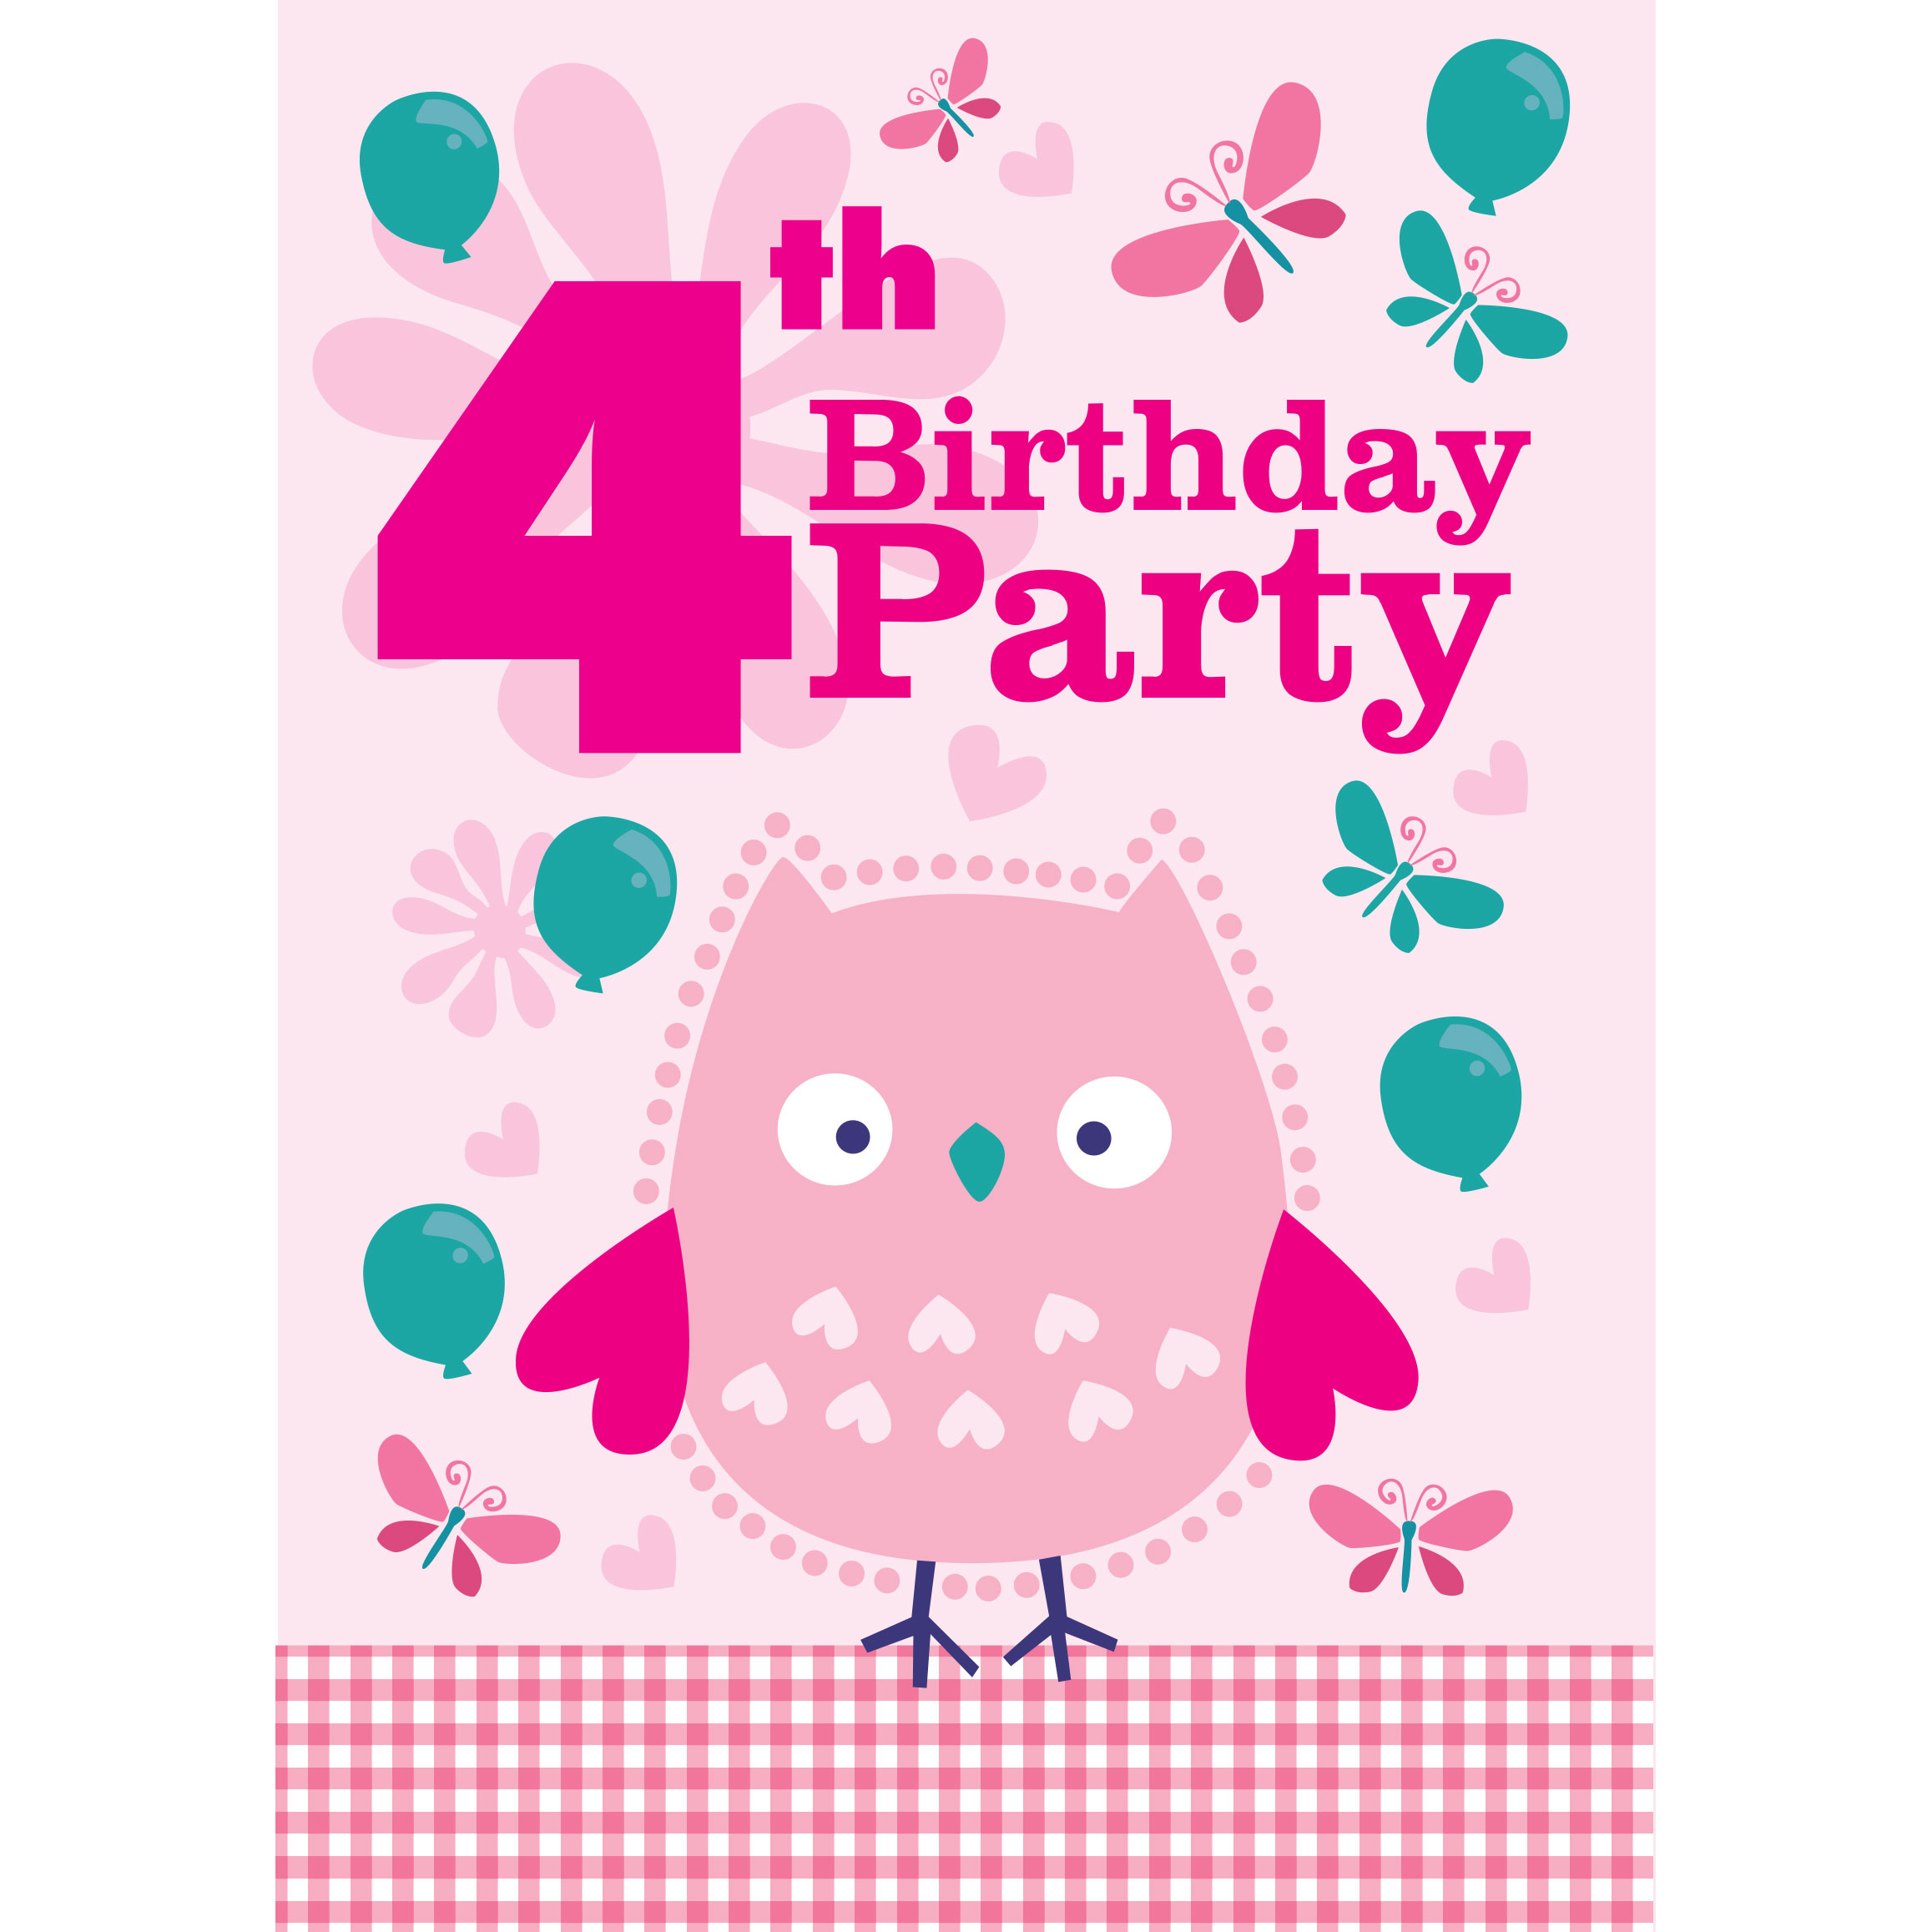 4th birthday party supplies party delights - Themes for a th birthday party ...